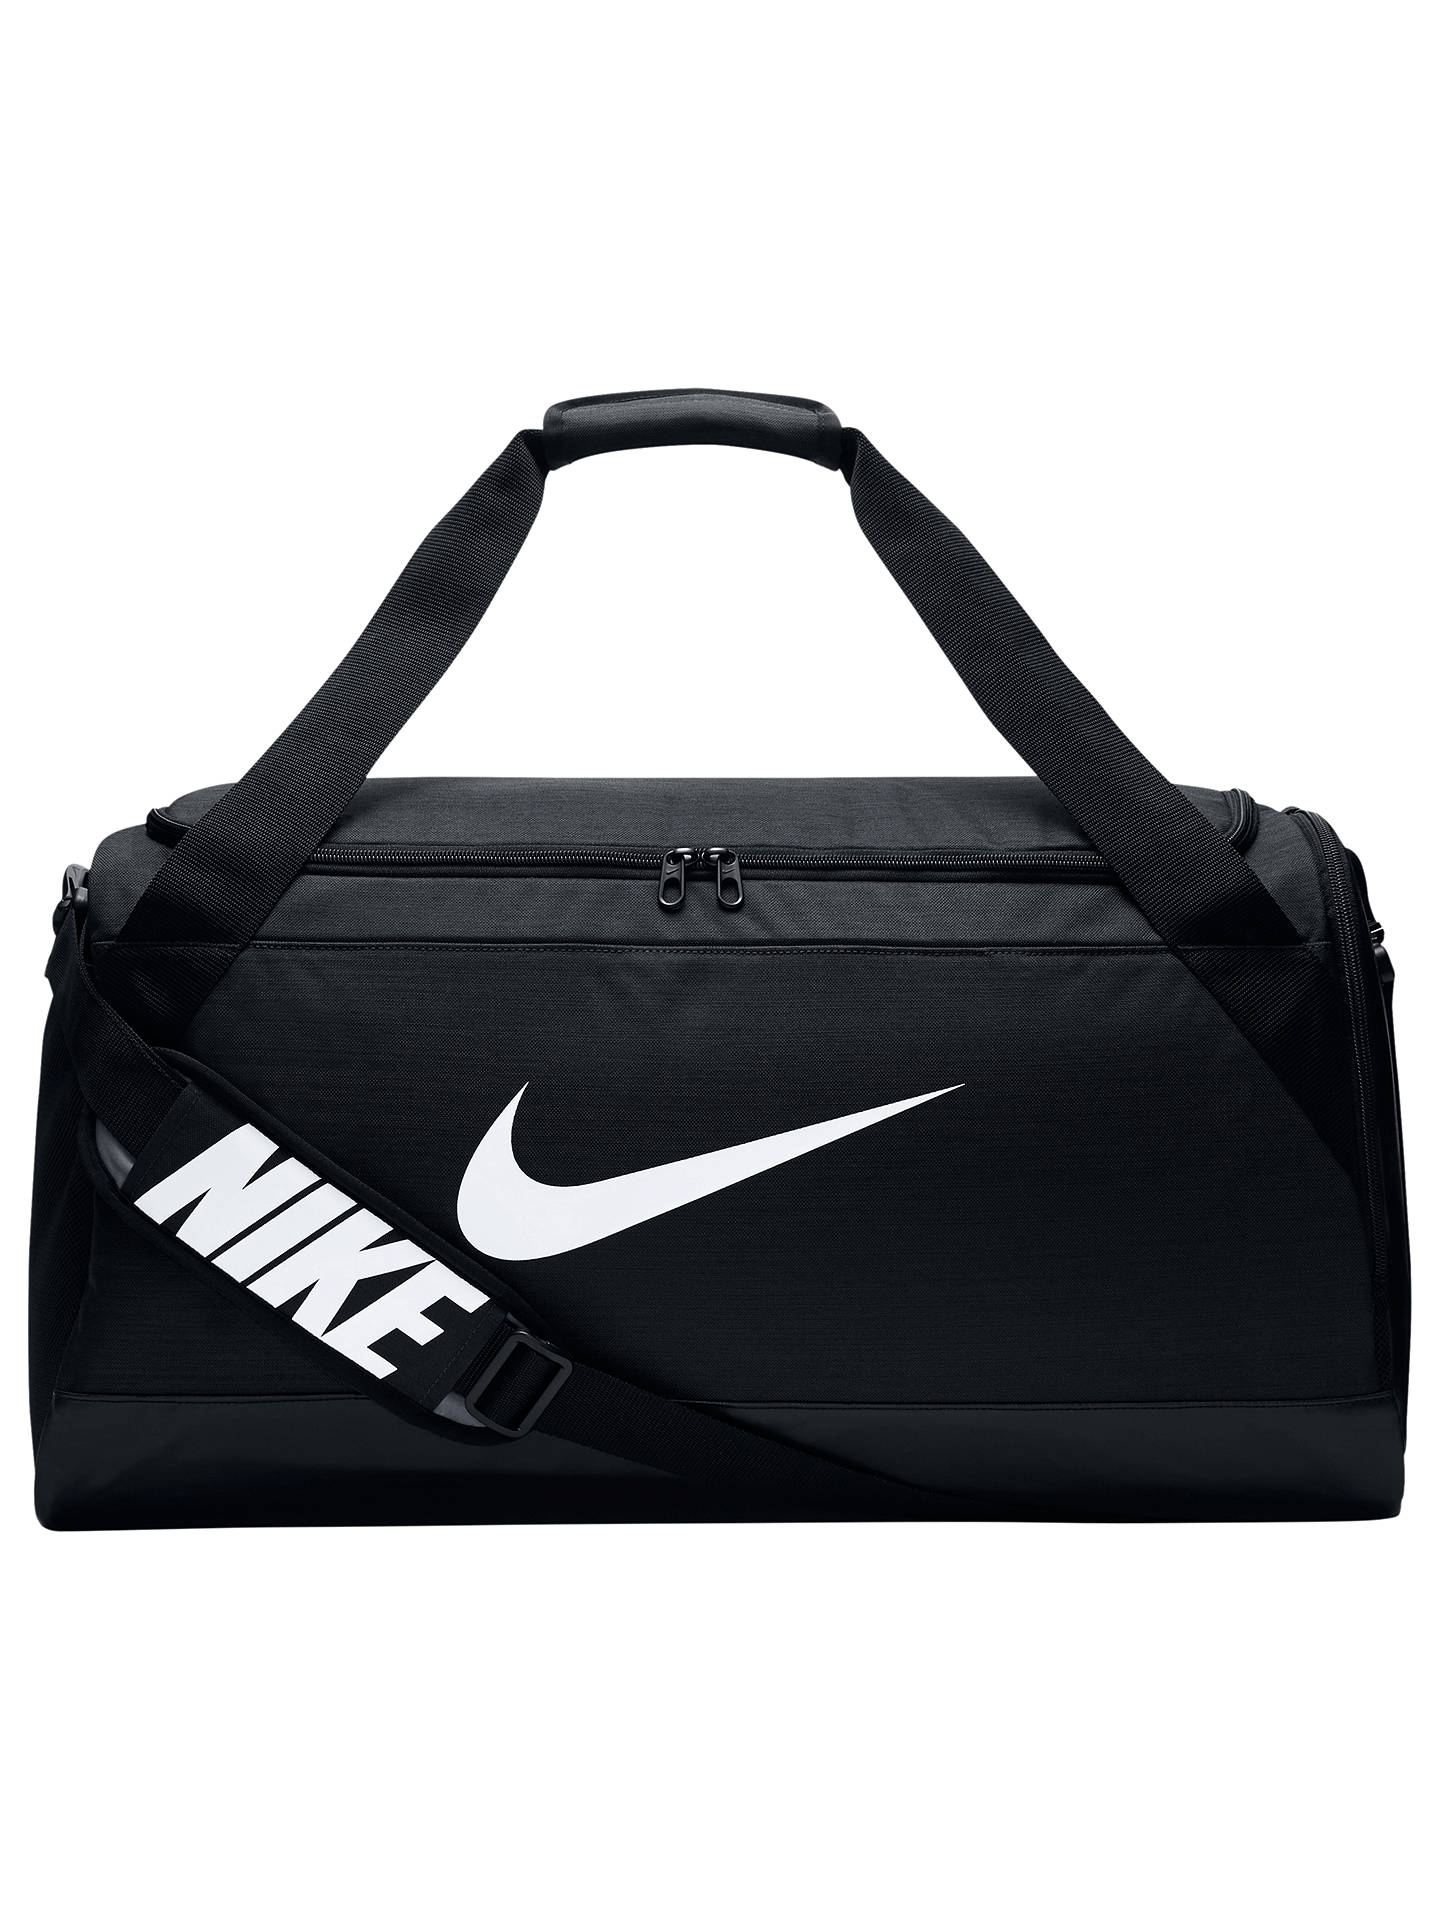 b759fde947 Nike Brasilia Medium Training Duffle Bag at John Lewis   Partners